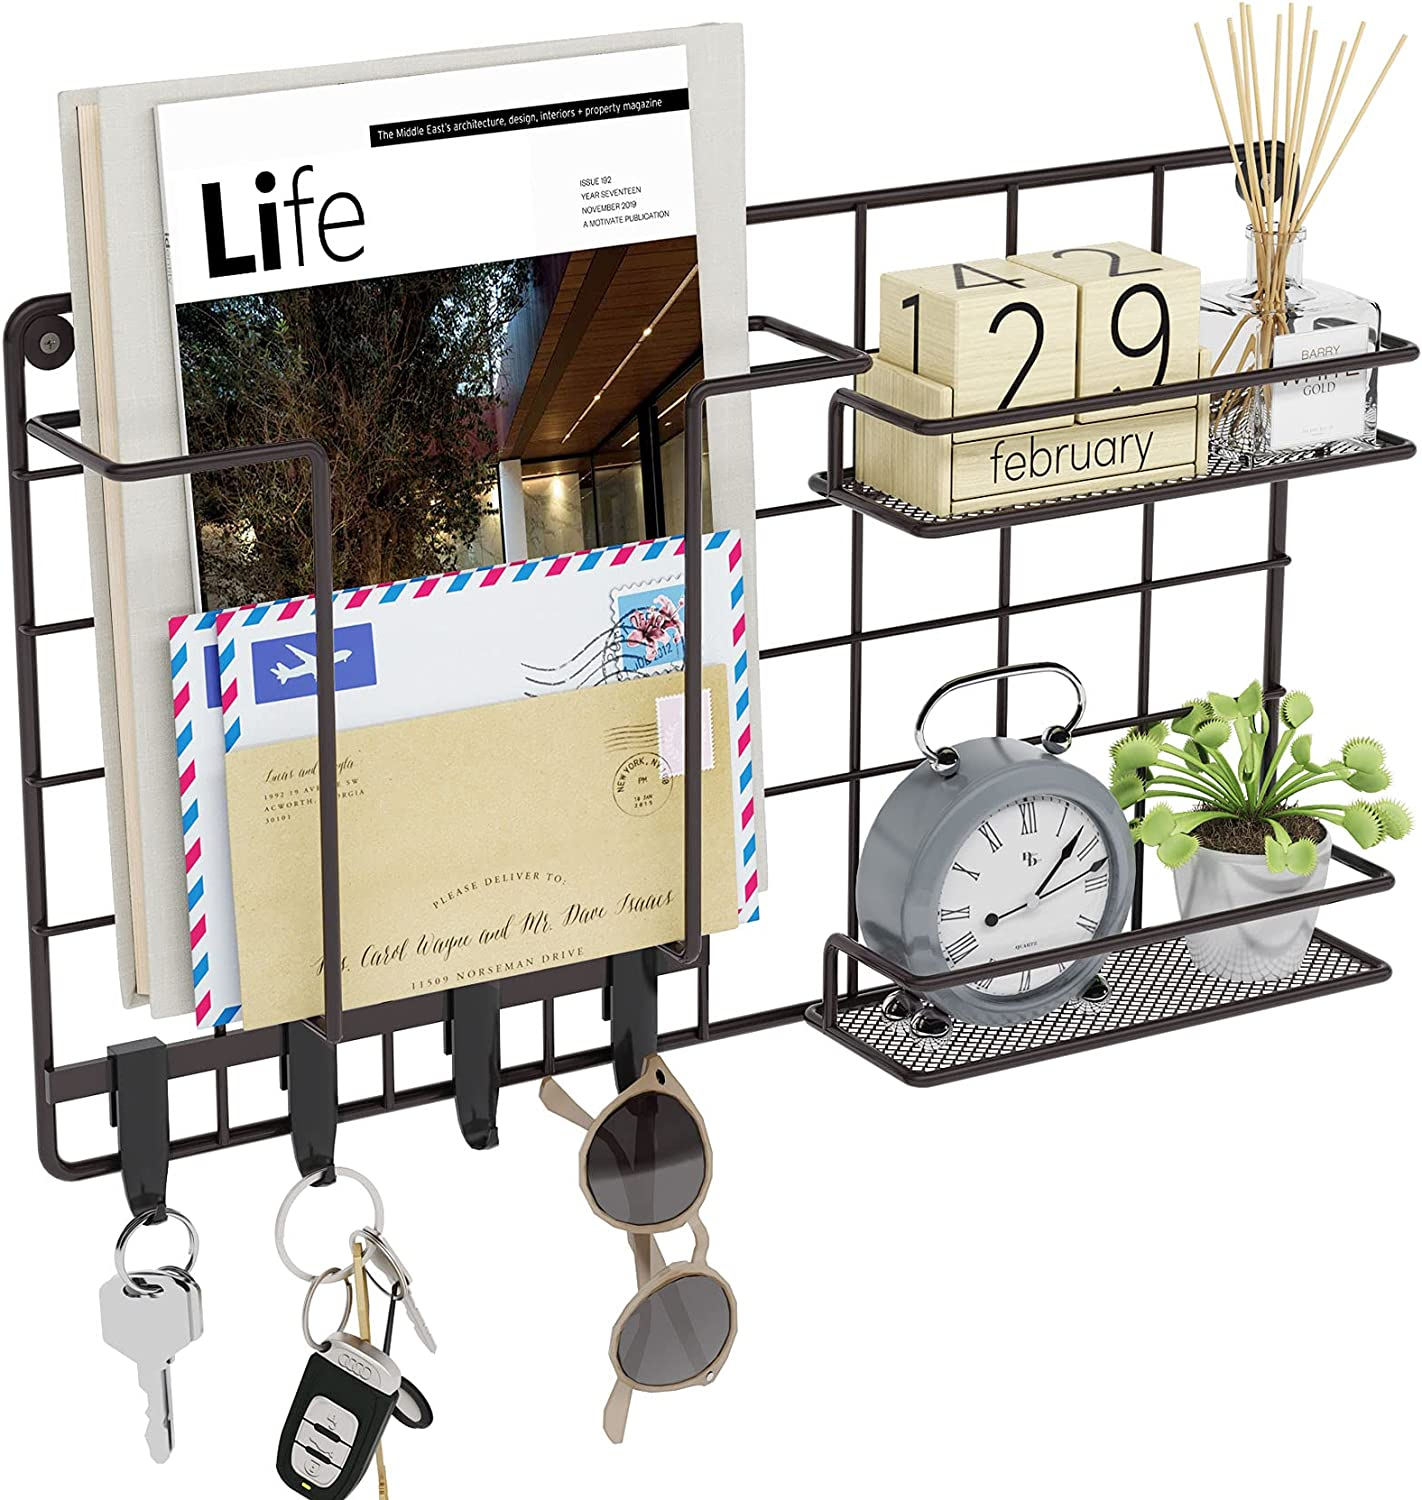 Mail Organizer Industrial Mail and Key Holder Metal Rack for Wall with 4 Key Hooks, 2 Floating Shelves and 1 Magazine Storage Shelf Wall Mounted Home Decor for Entryway